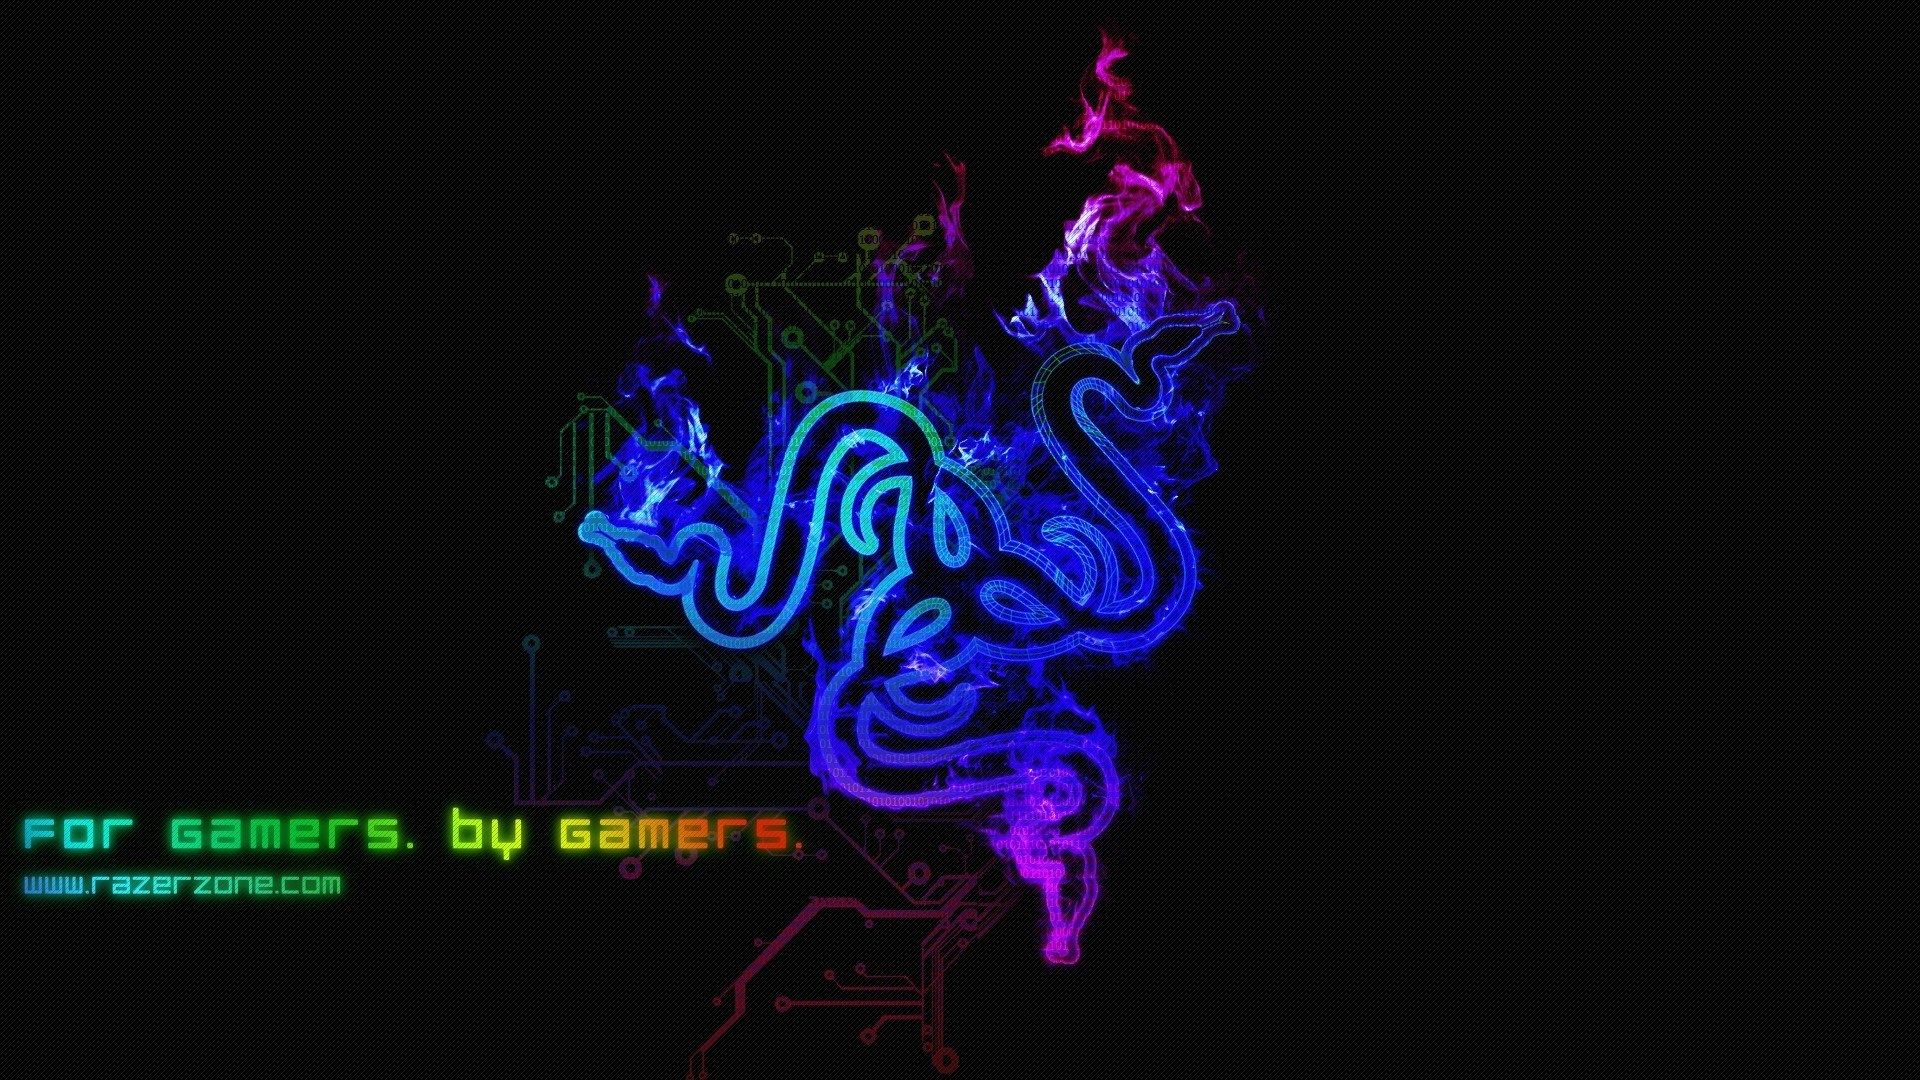 Razer Pic Full Hd Pictures 1920x1080 620 Kb Wallpaperscreator